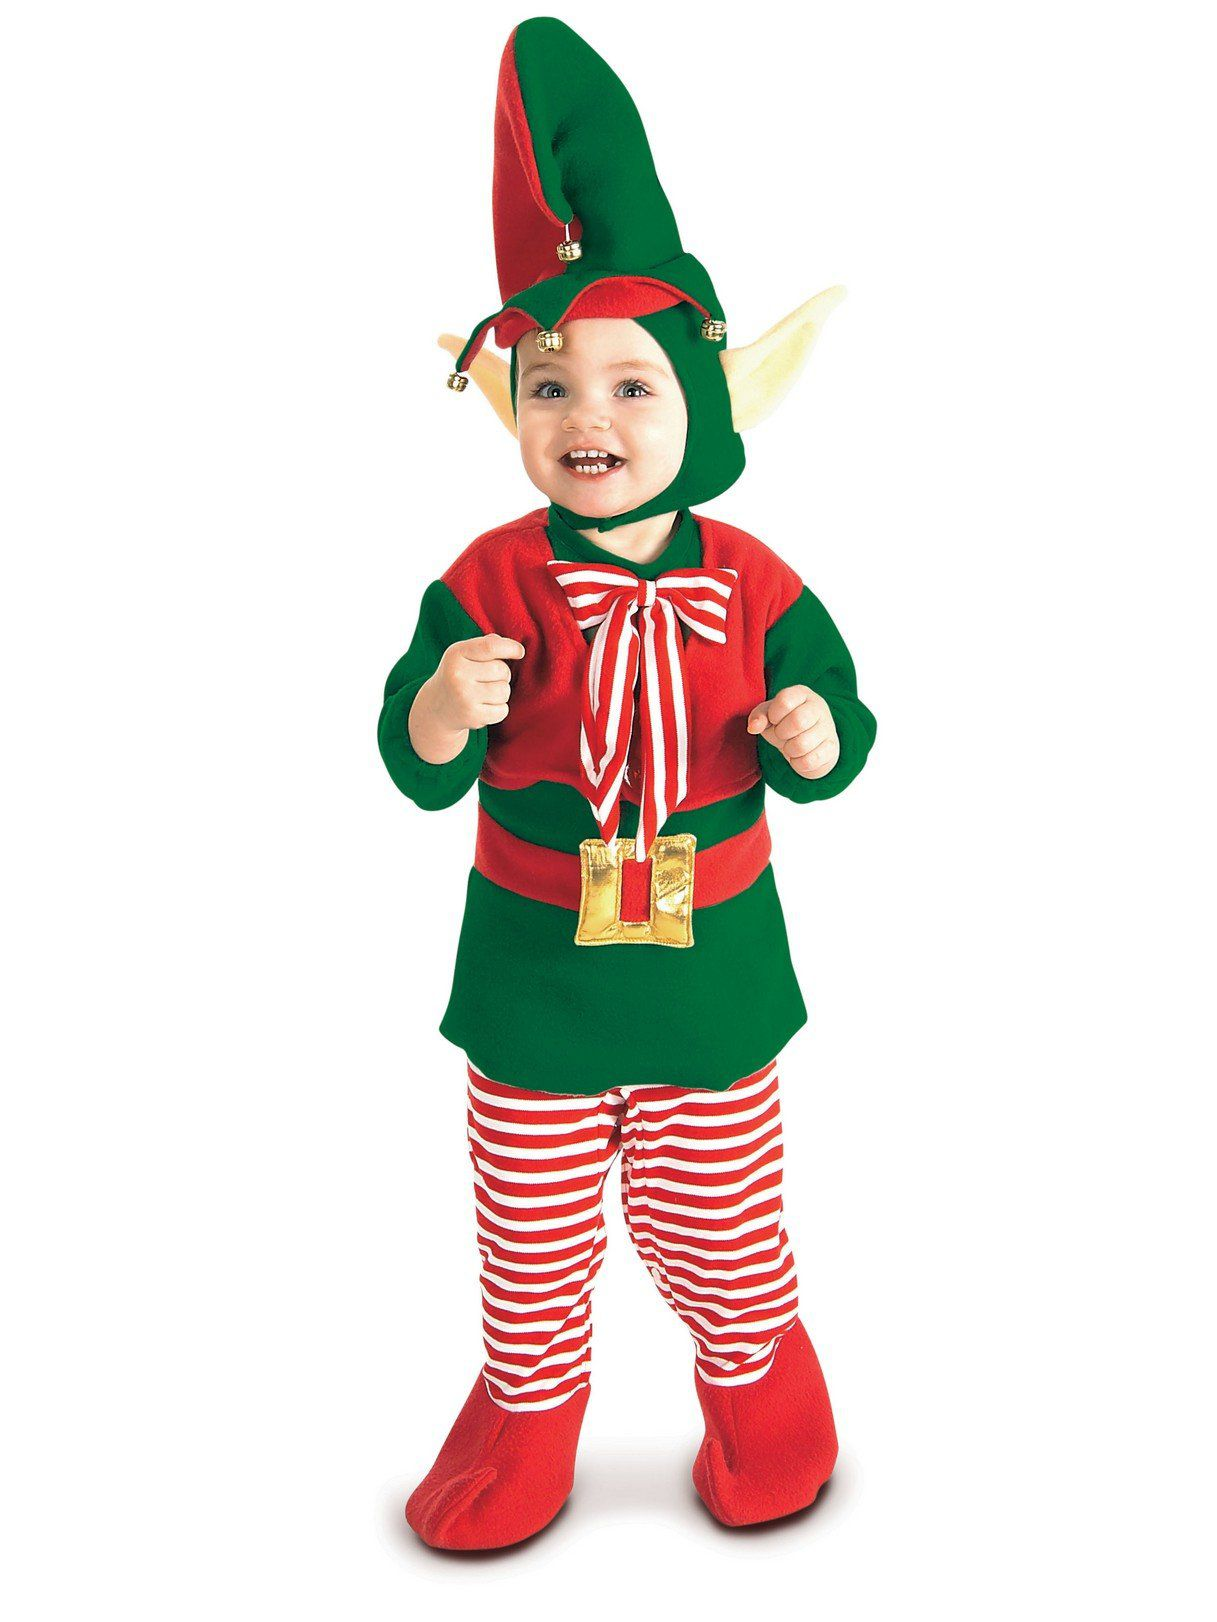 52e99a49e5a70 Christmas Elf Infant toddler - Baby Toddler Costumes for 2018 ...